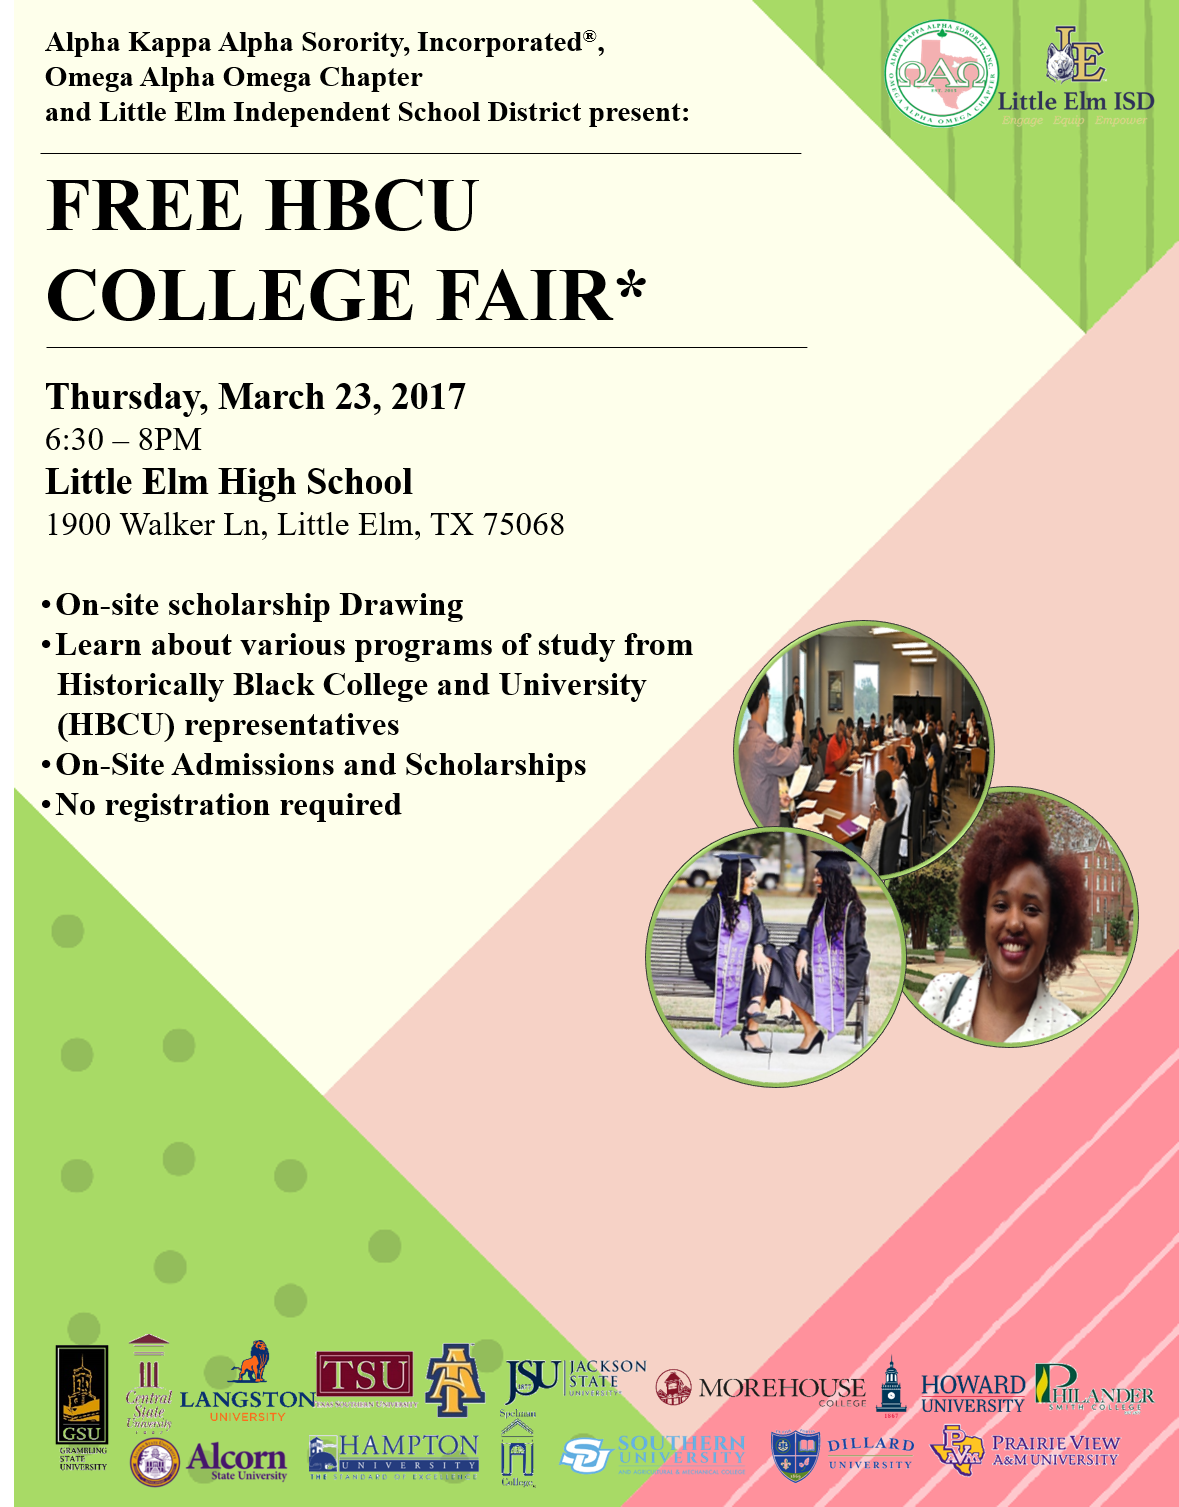 Free HBCU College Fair - click for information.